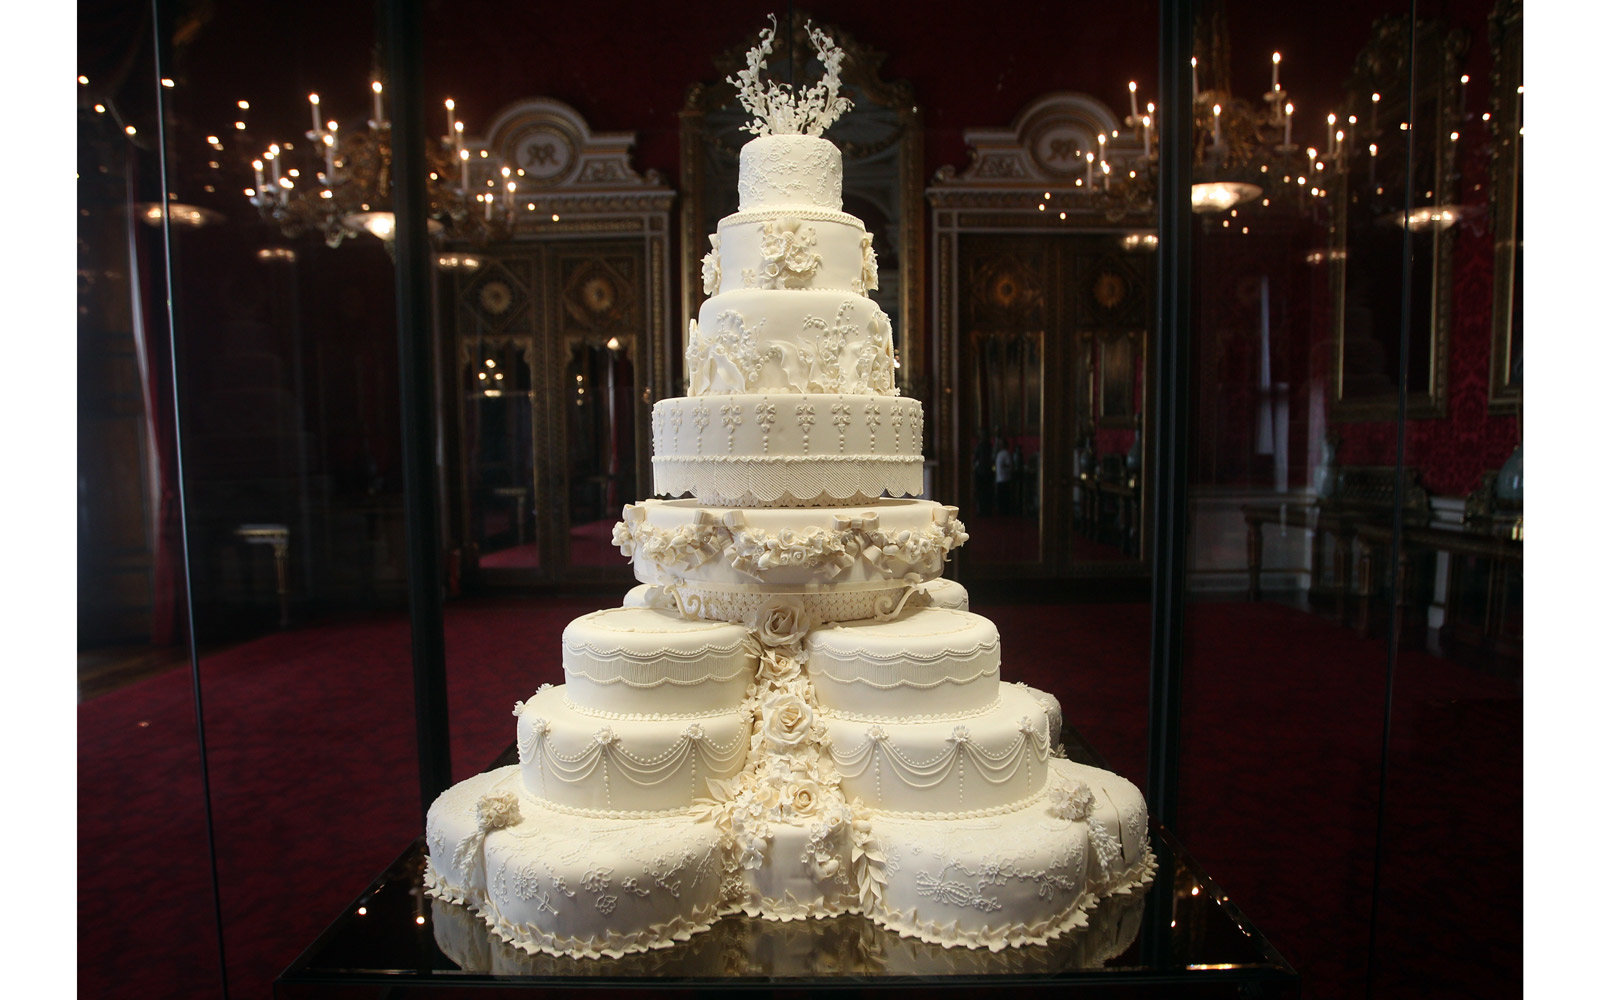 he Duke and Duchess of Cambridge's royal wedding cake is photographed before it goes on display at Buckingham Palace during the annual summer opening